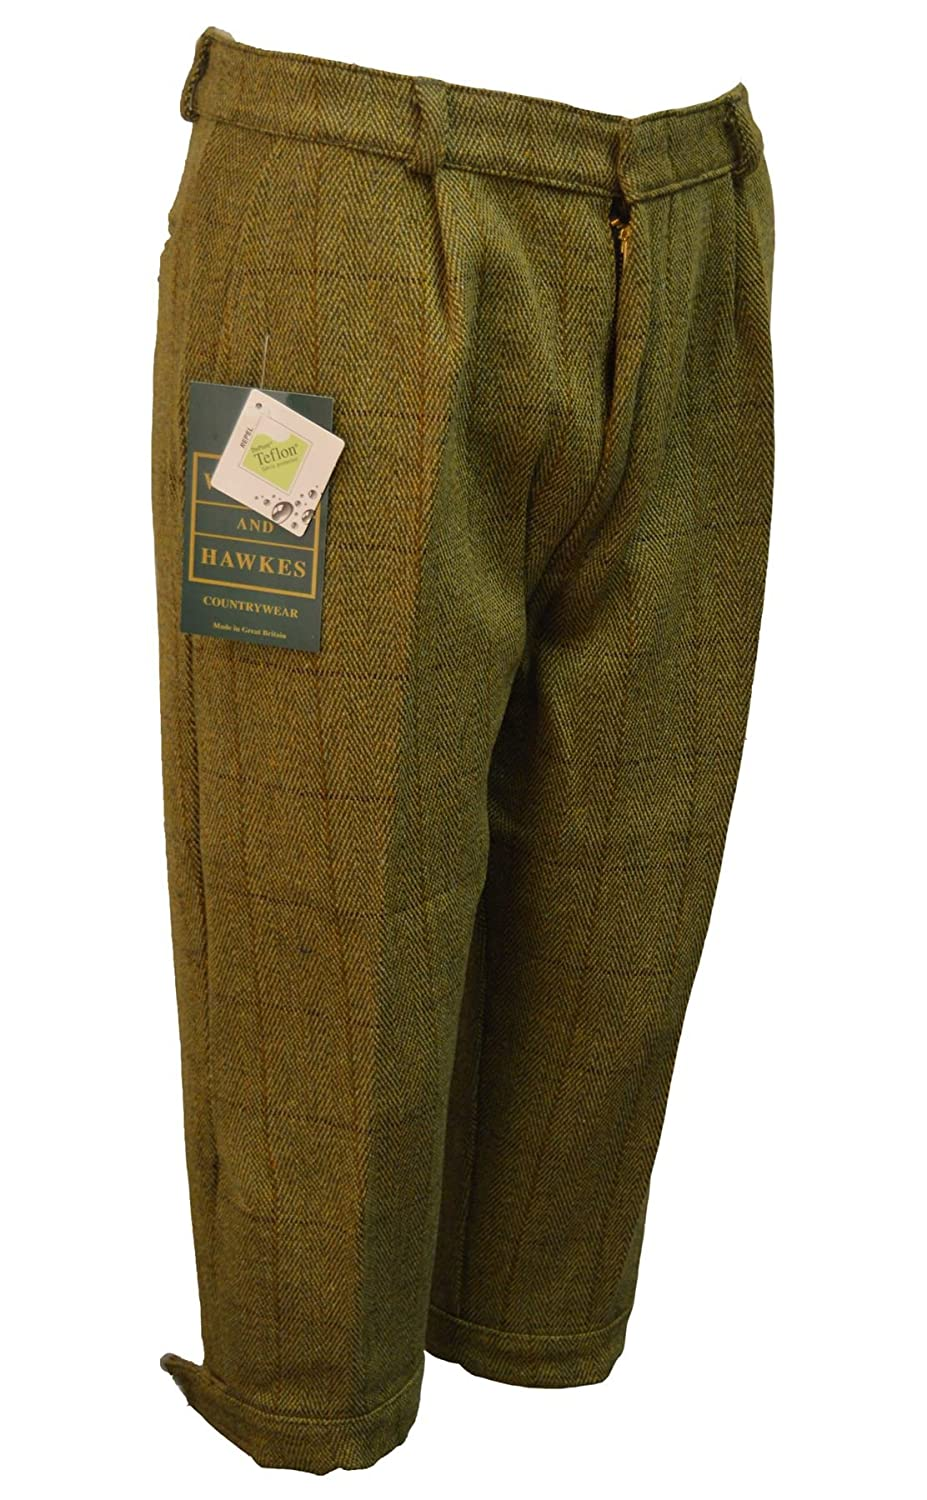 Men's 1900s Costumes: Indiana Jones, WW1 Pilot, Safari Costumes Walker & Hawkes - Mens Derby Tweed Shooting Plus Fours LONG Breeks Trousers - Light Sage - 32-42 $76.99 AT vintagedancer.com